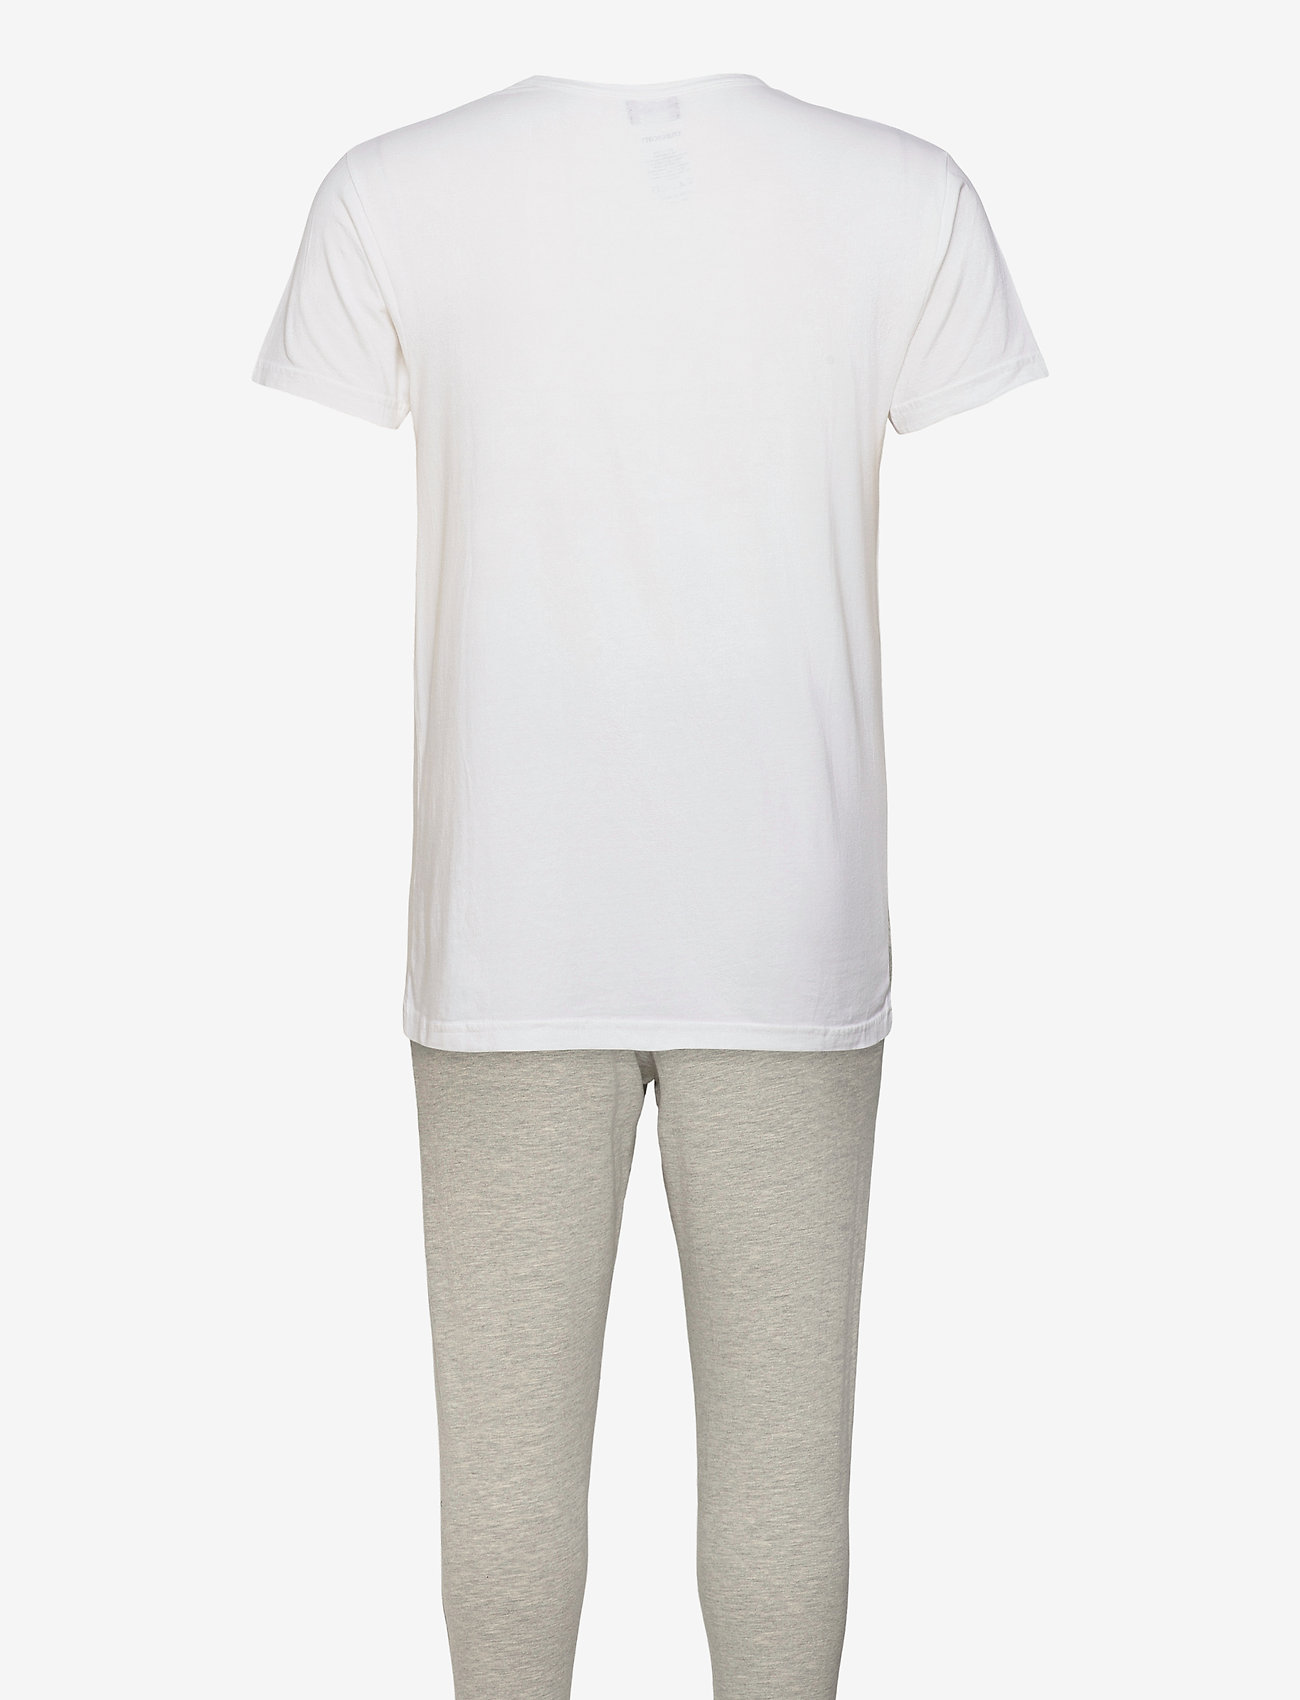 Lyle & Scott - BENJAMIN - pyjama's - bright white/light grey marl - 1